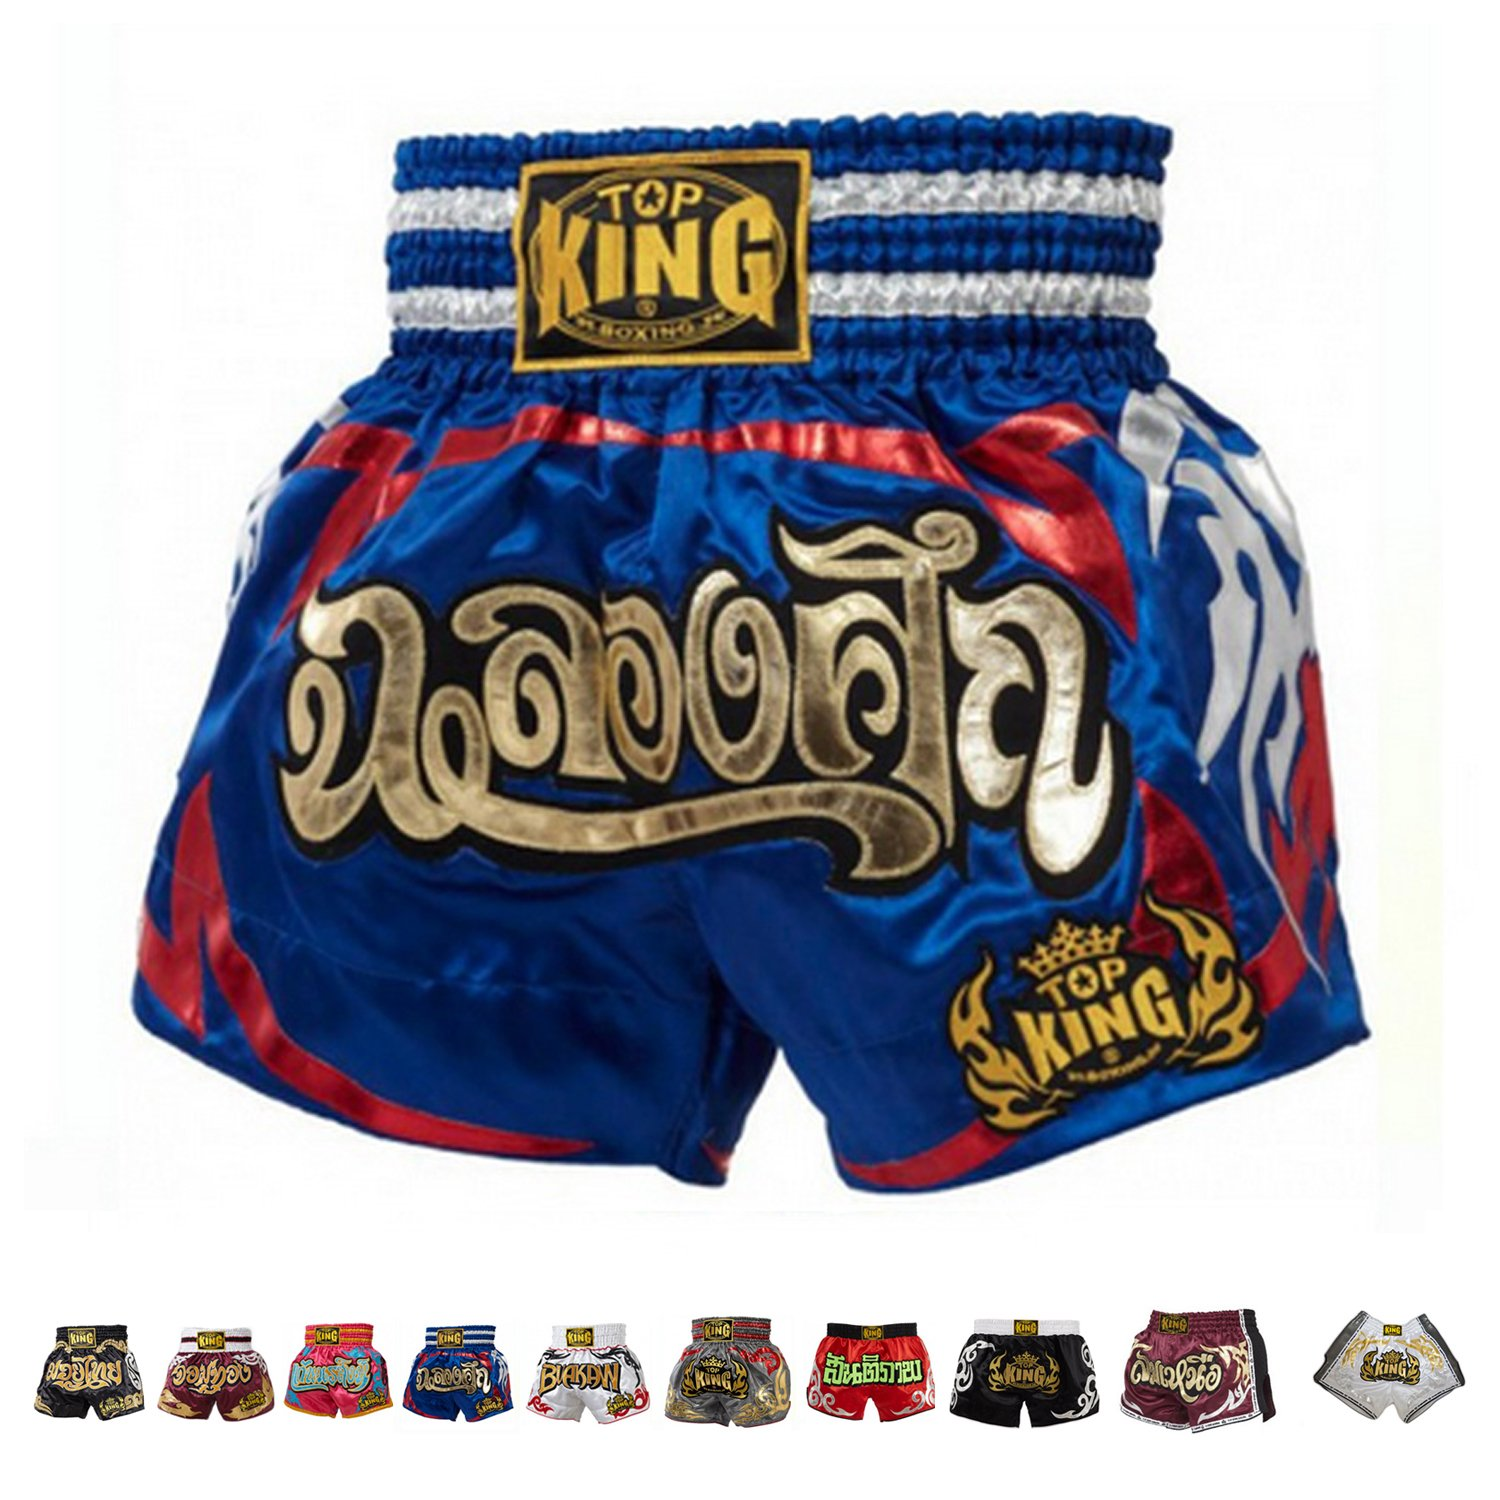 blueee Celebration 4L Top King Boxing Muay Thai Shorts Normal or Retro Style Size S, M, L, XL, 3L, 4L